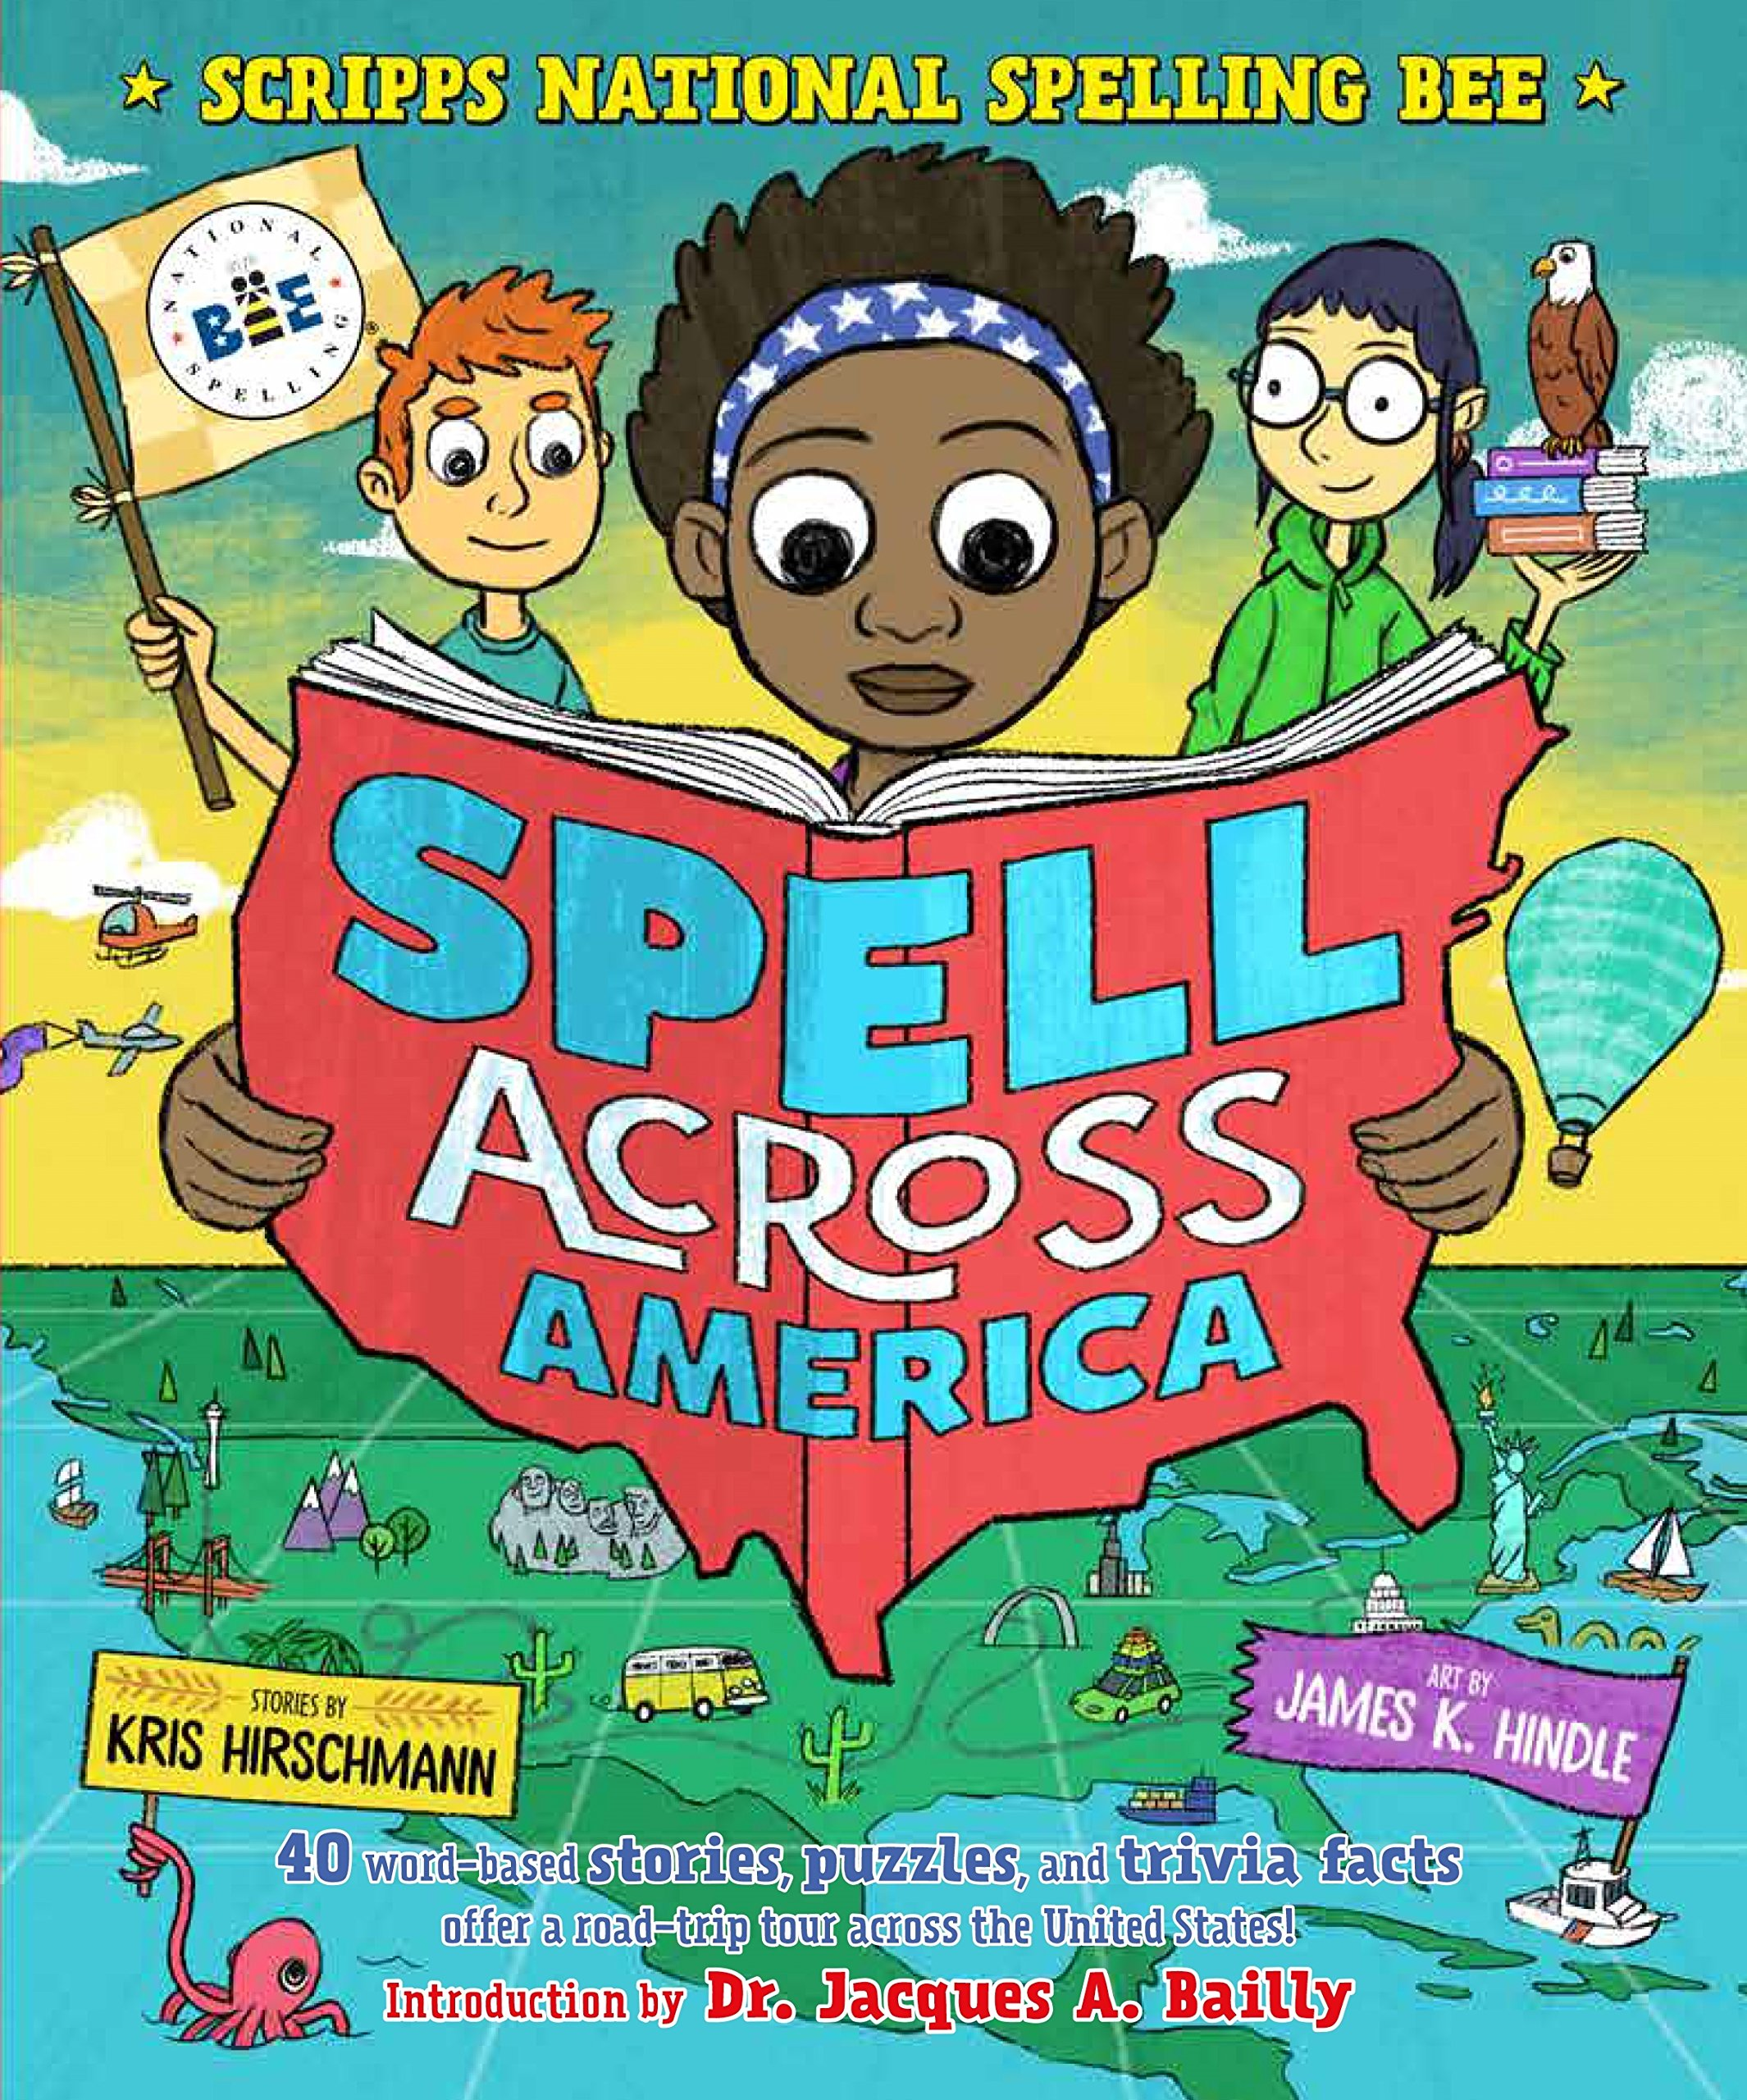 Read Online Spell Across America: 40 word-based stories, puzzles, and trivia facts offer a road-trip tour across the United States (Scripps National Spelling Bee) ebook